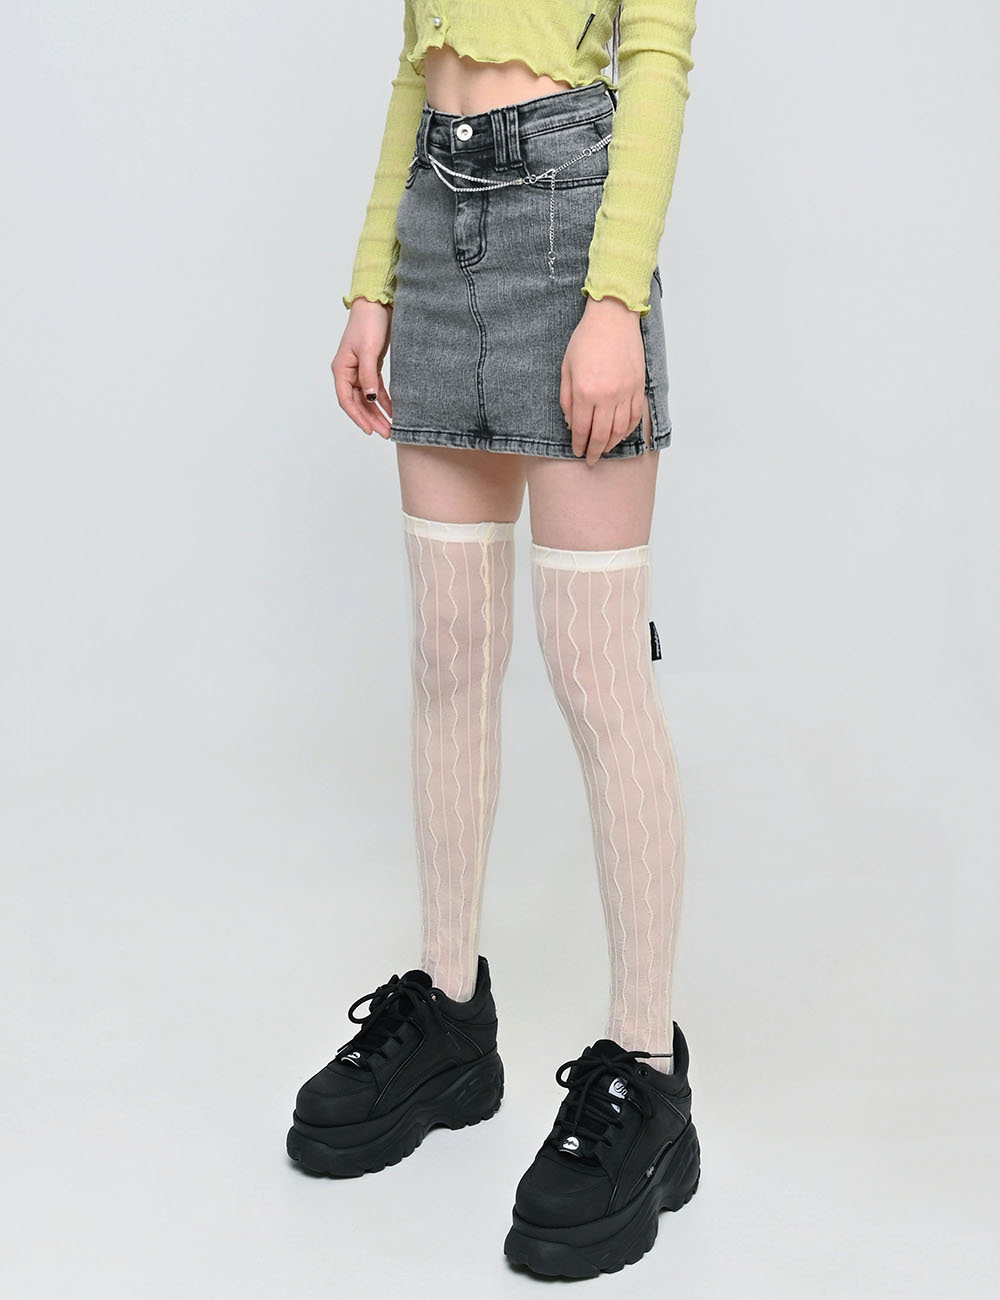 RIMPLE KNEE SOCKS(IVORY) 3차 재입고